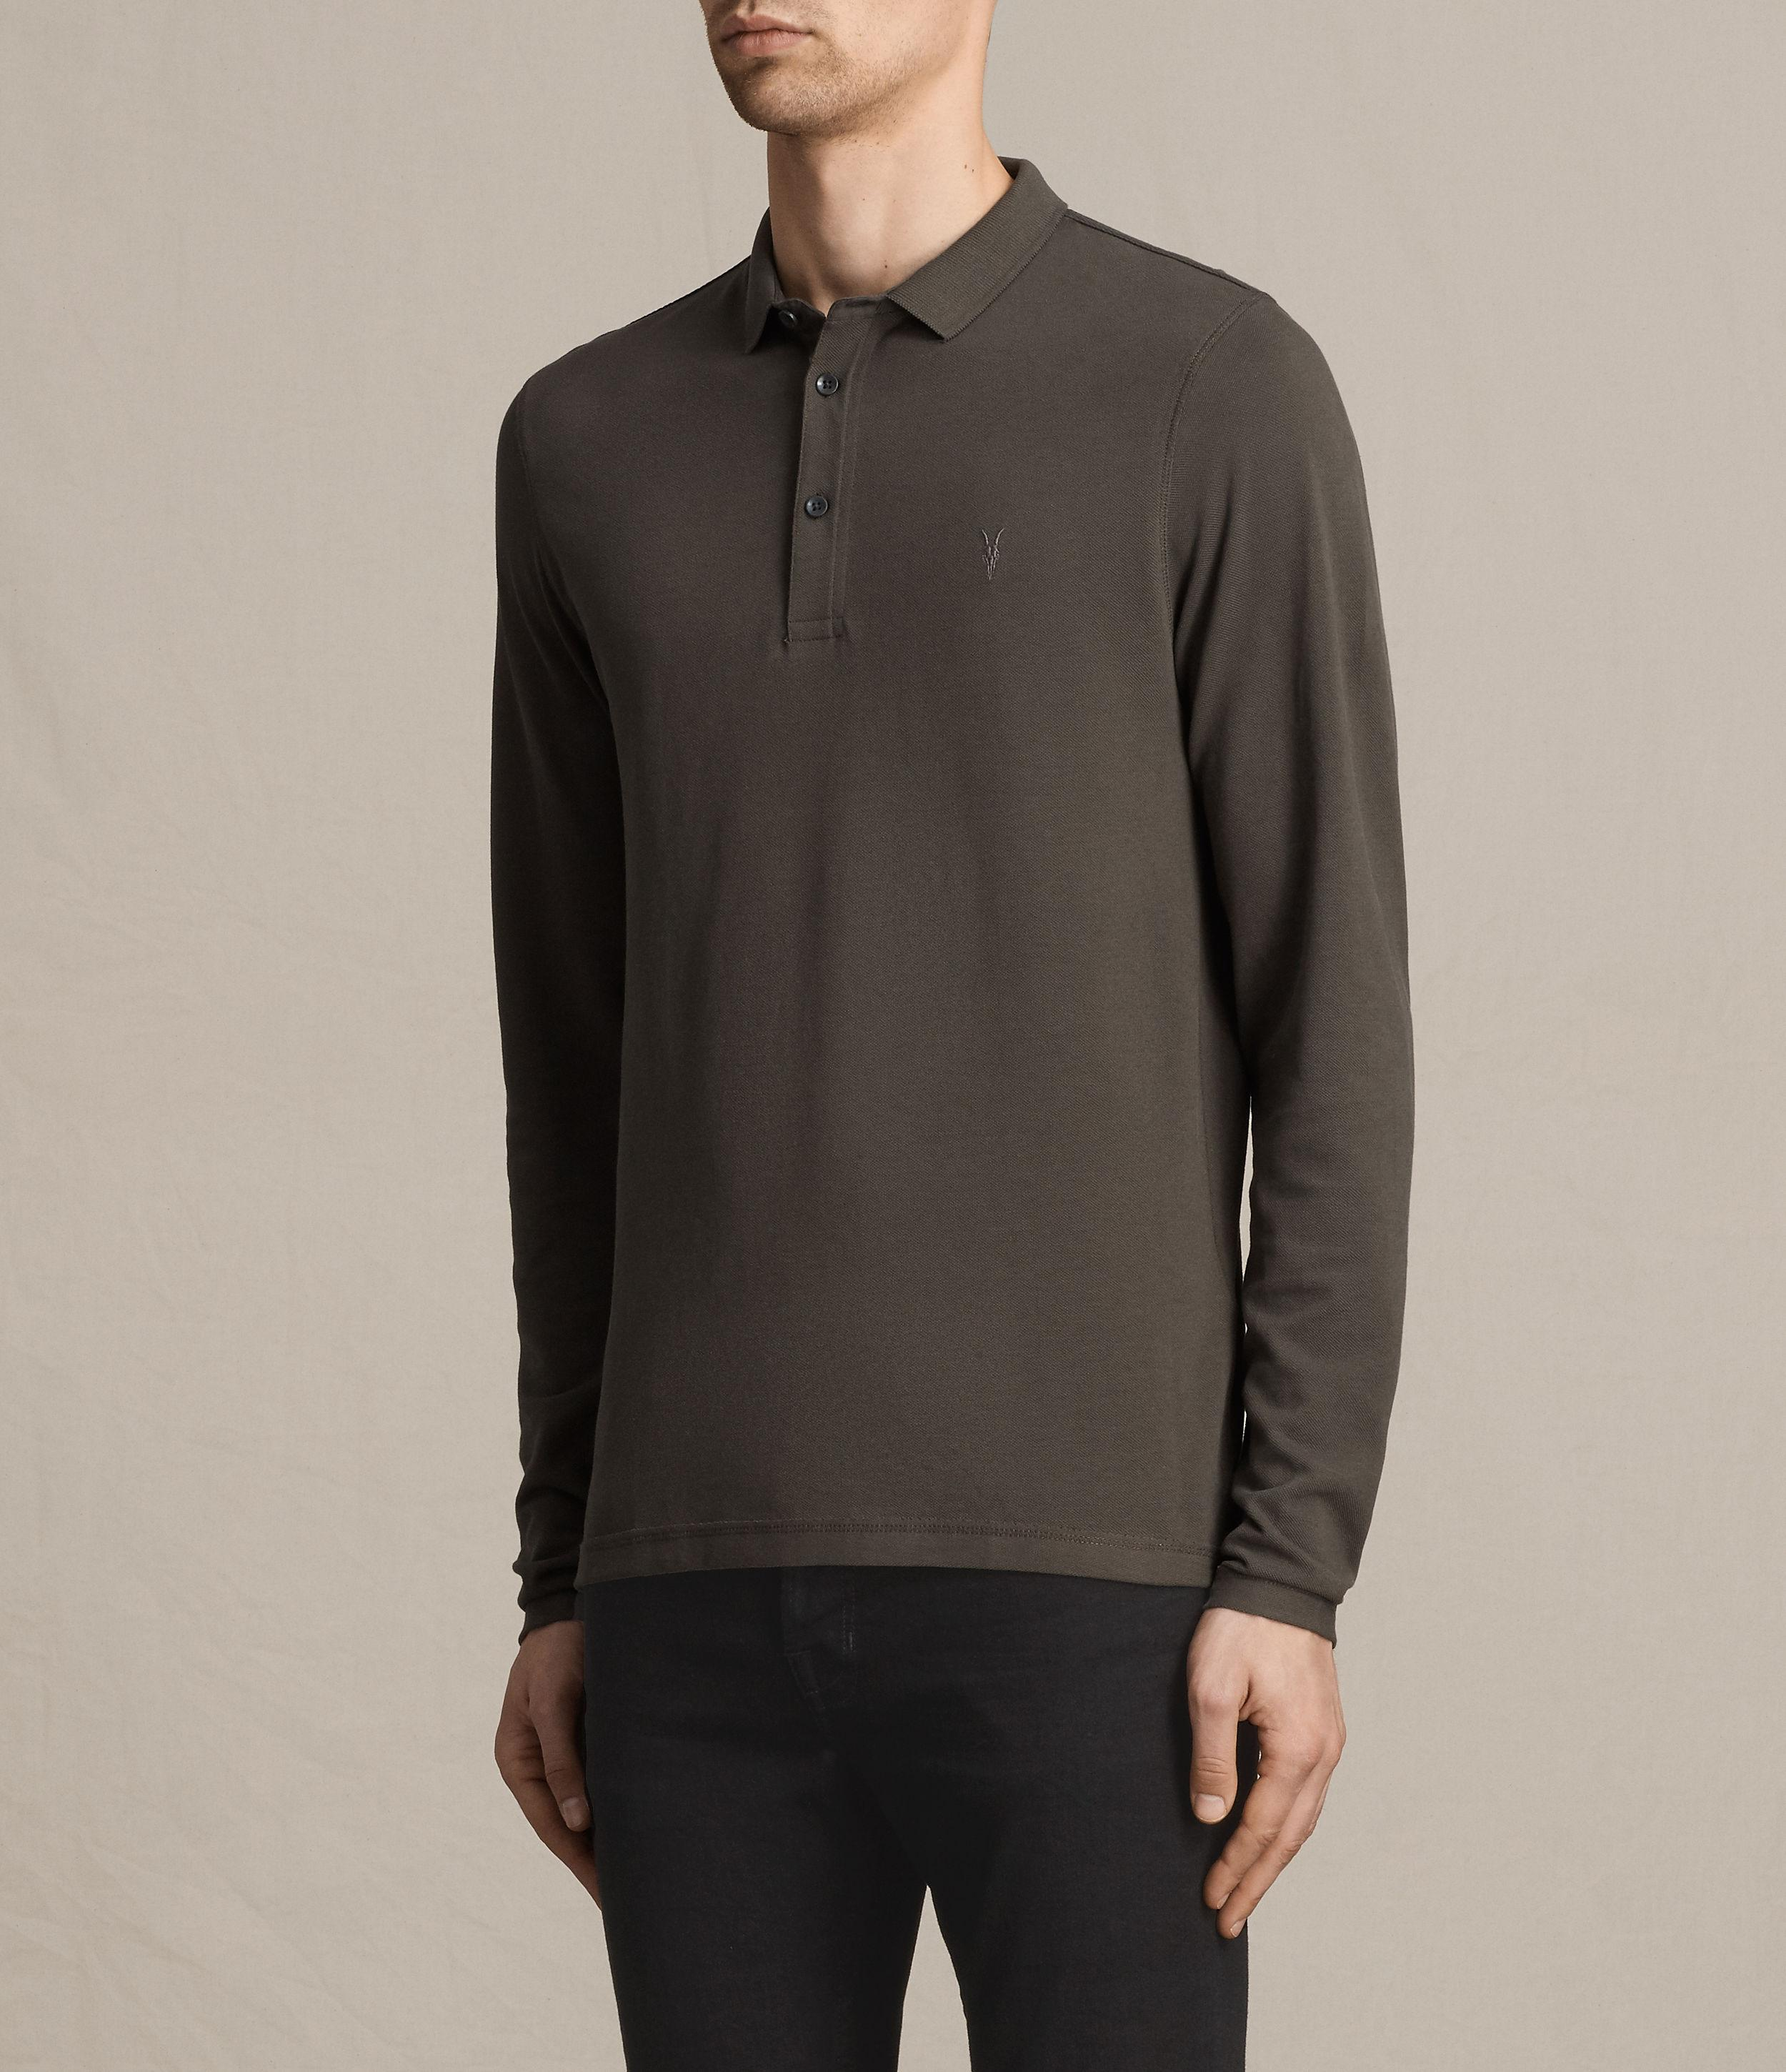 Allsaints reform long sleeve polo shirt for men lyst for All saints polo shirt